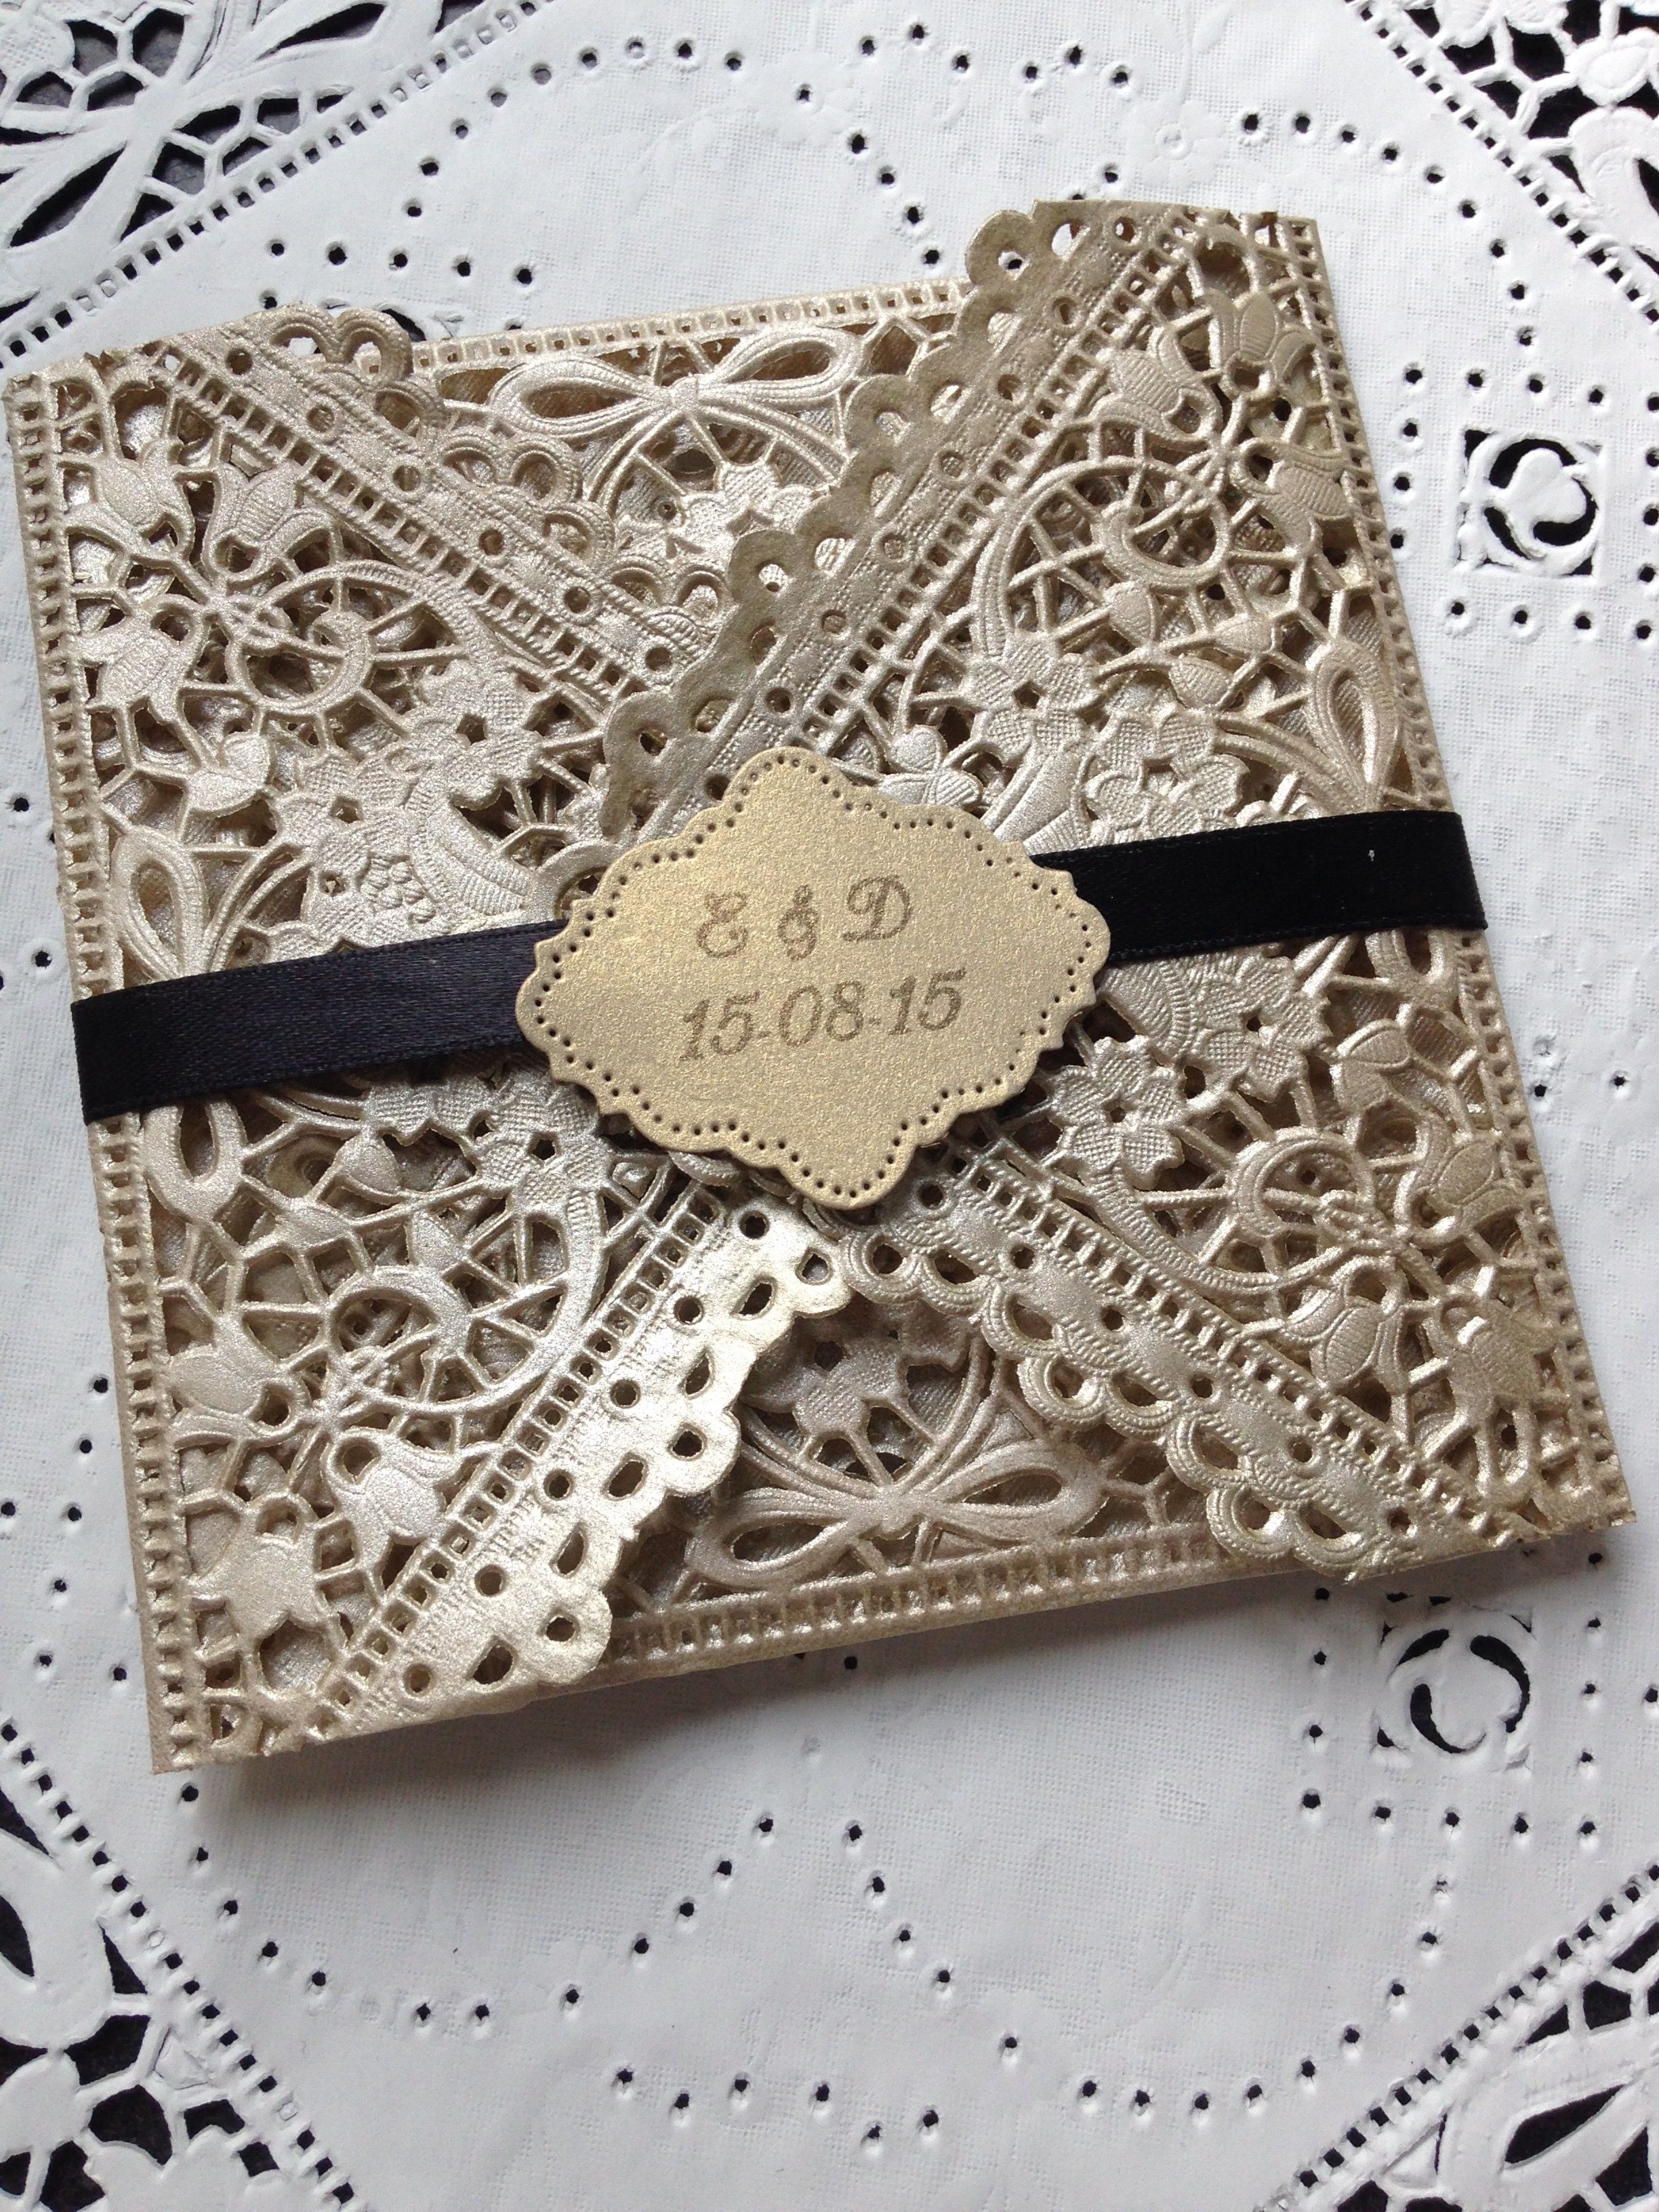 Personalised Hand Made Doily Wedding Invitation In Gold Black With Monogram Satin Wrap By Crafty Designer: Black Doily Wedding Invitations At Reisefeber.org